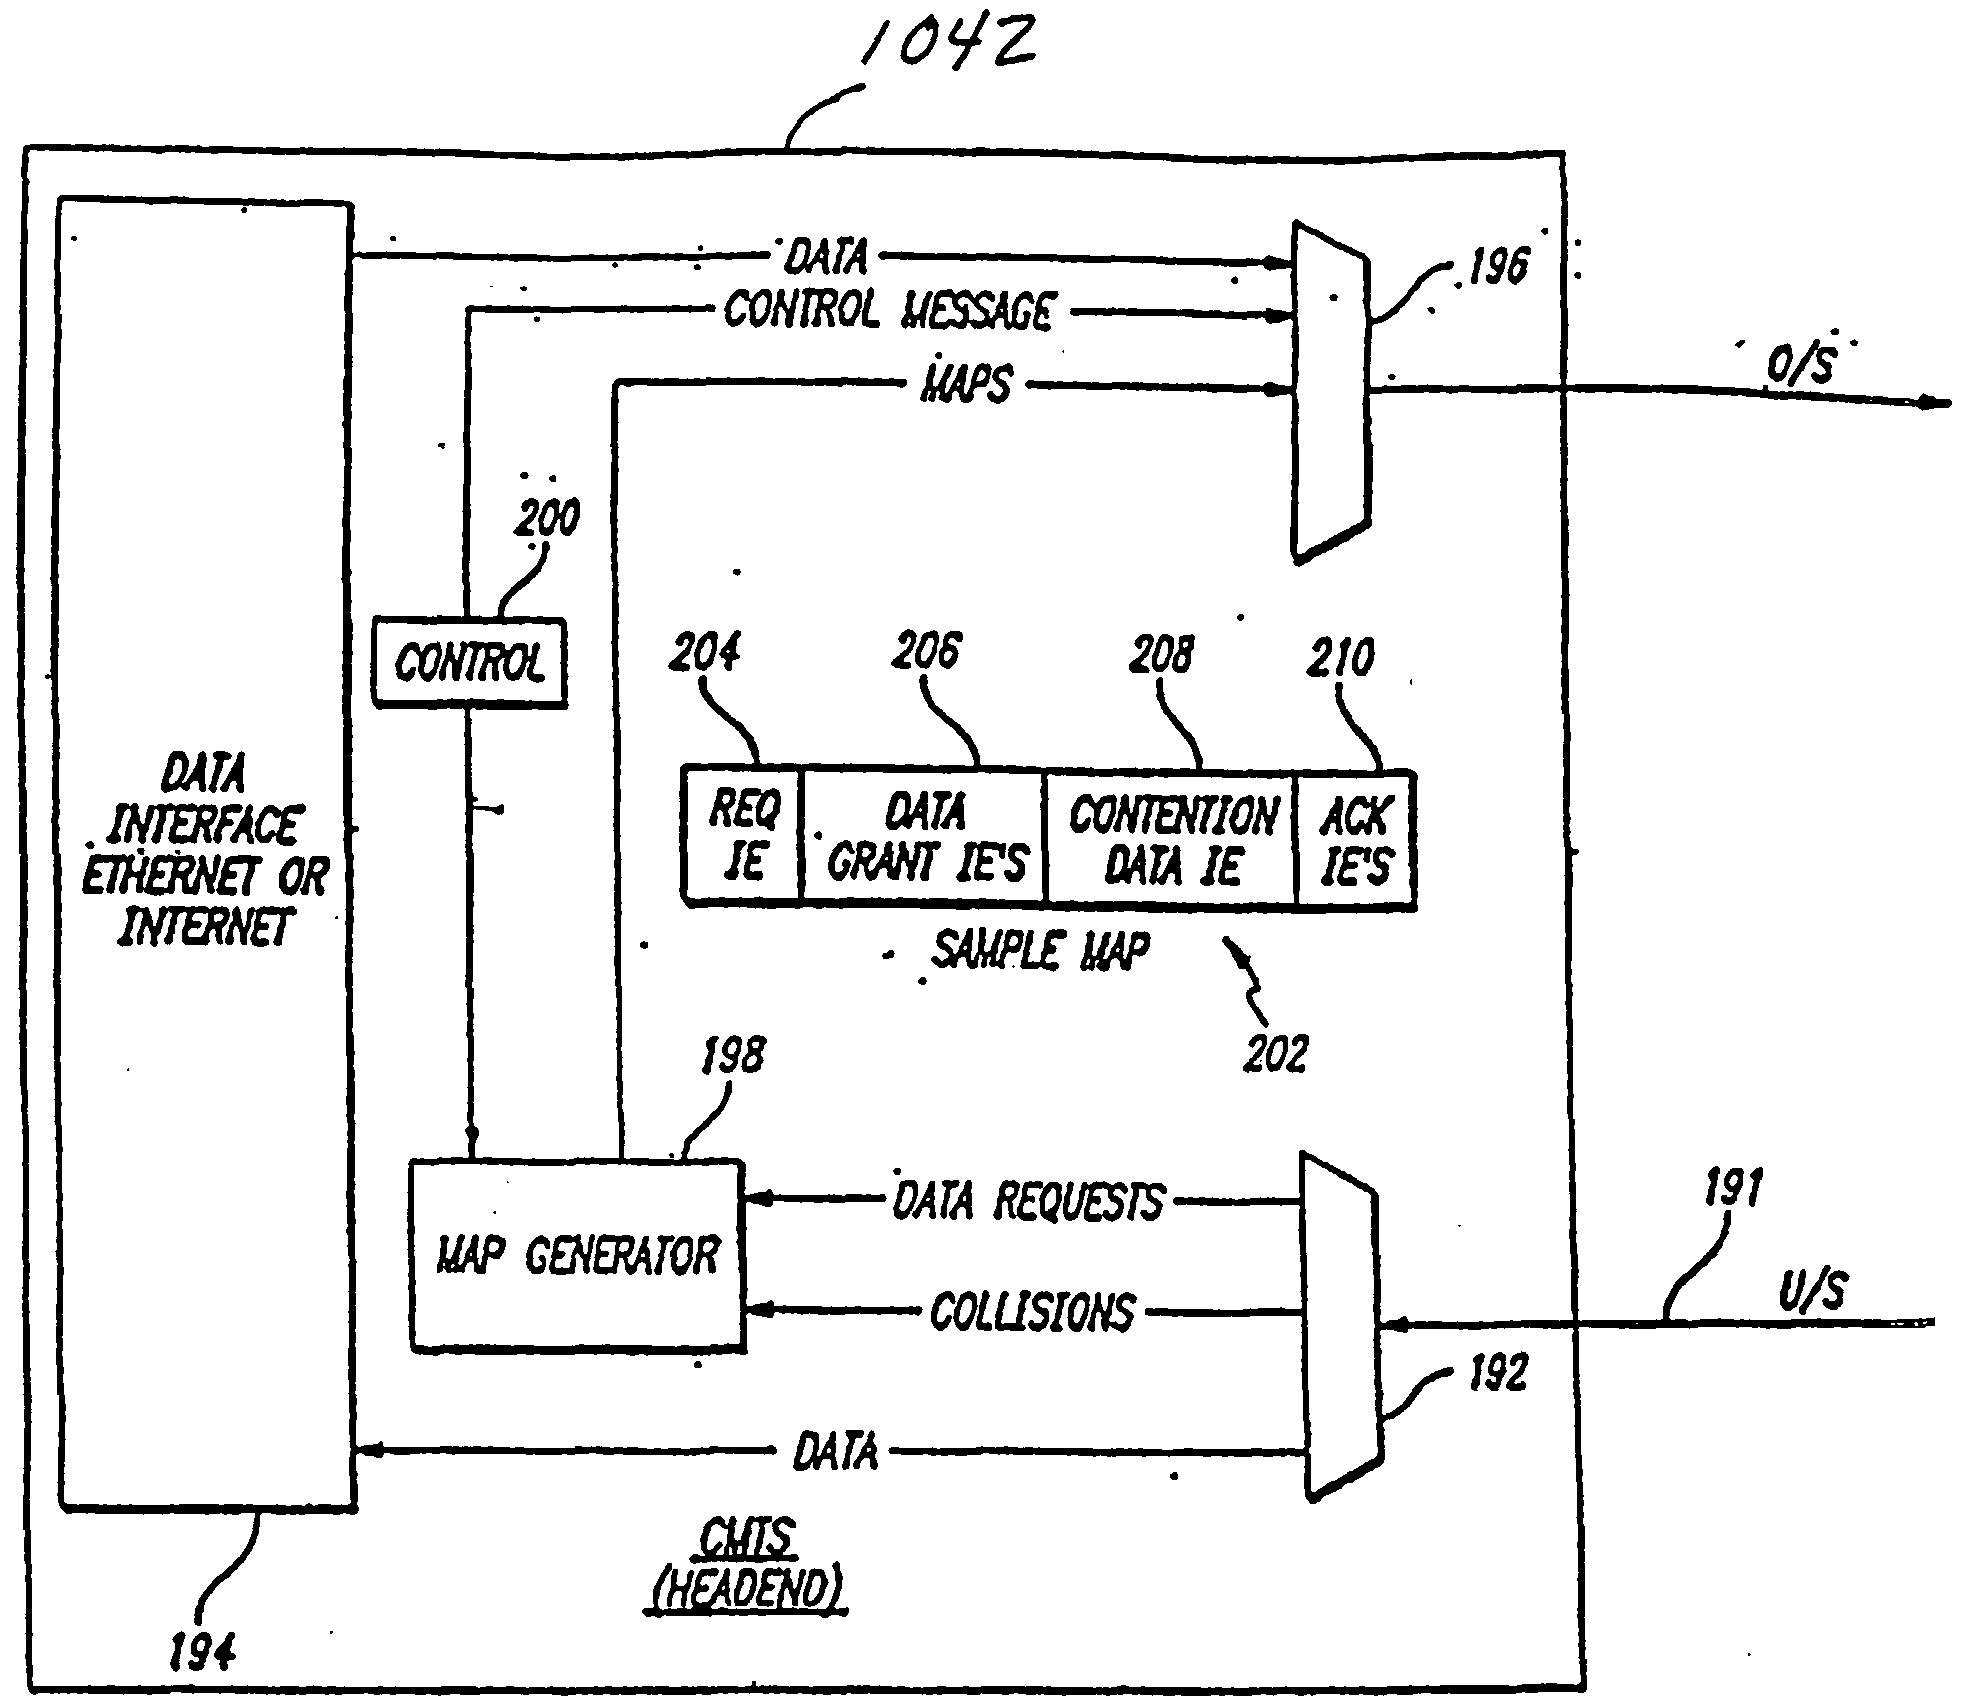 Wo2001019005a1 System And Method For The Synchronization Keyboard Hp Mini 210 1000 1014 1100 1008 1050 1002 2000 2100 Series Figure Imgf000067 0001